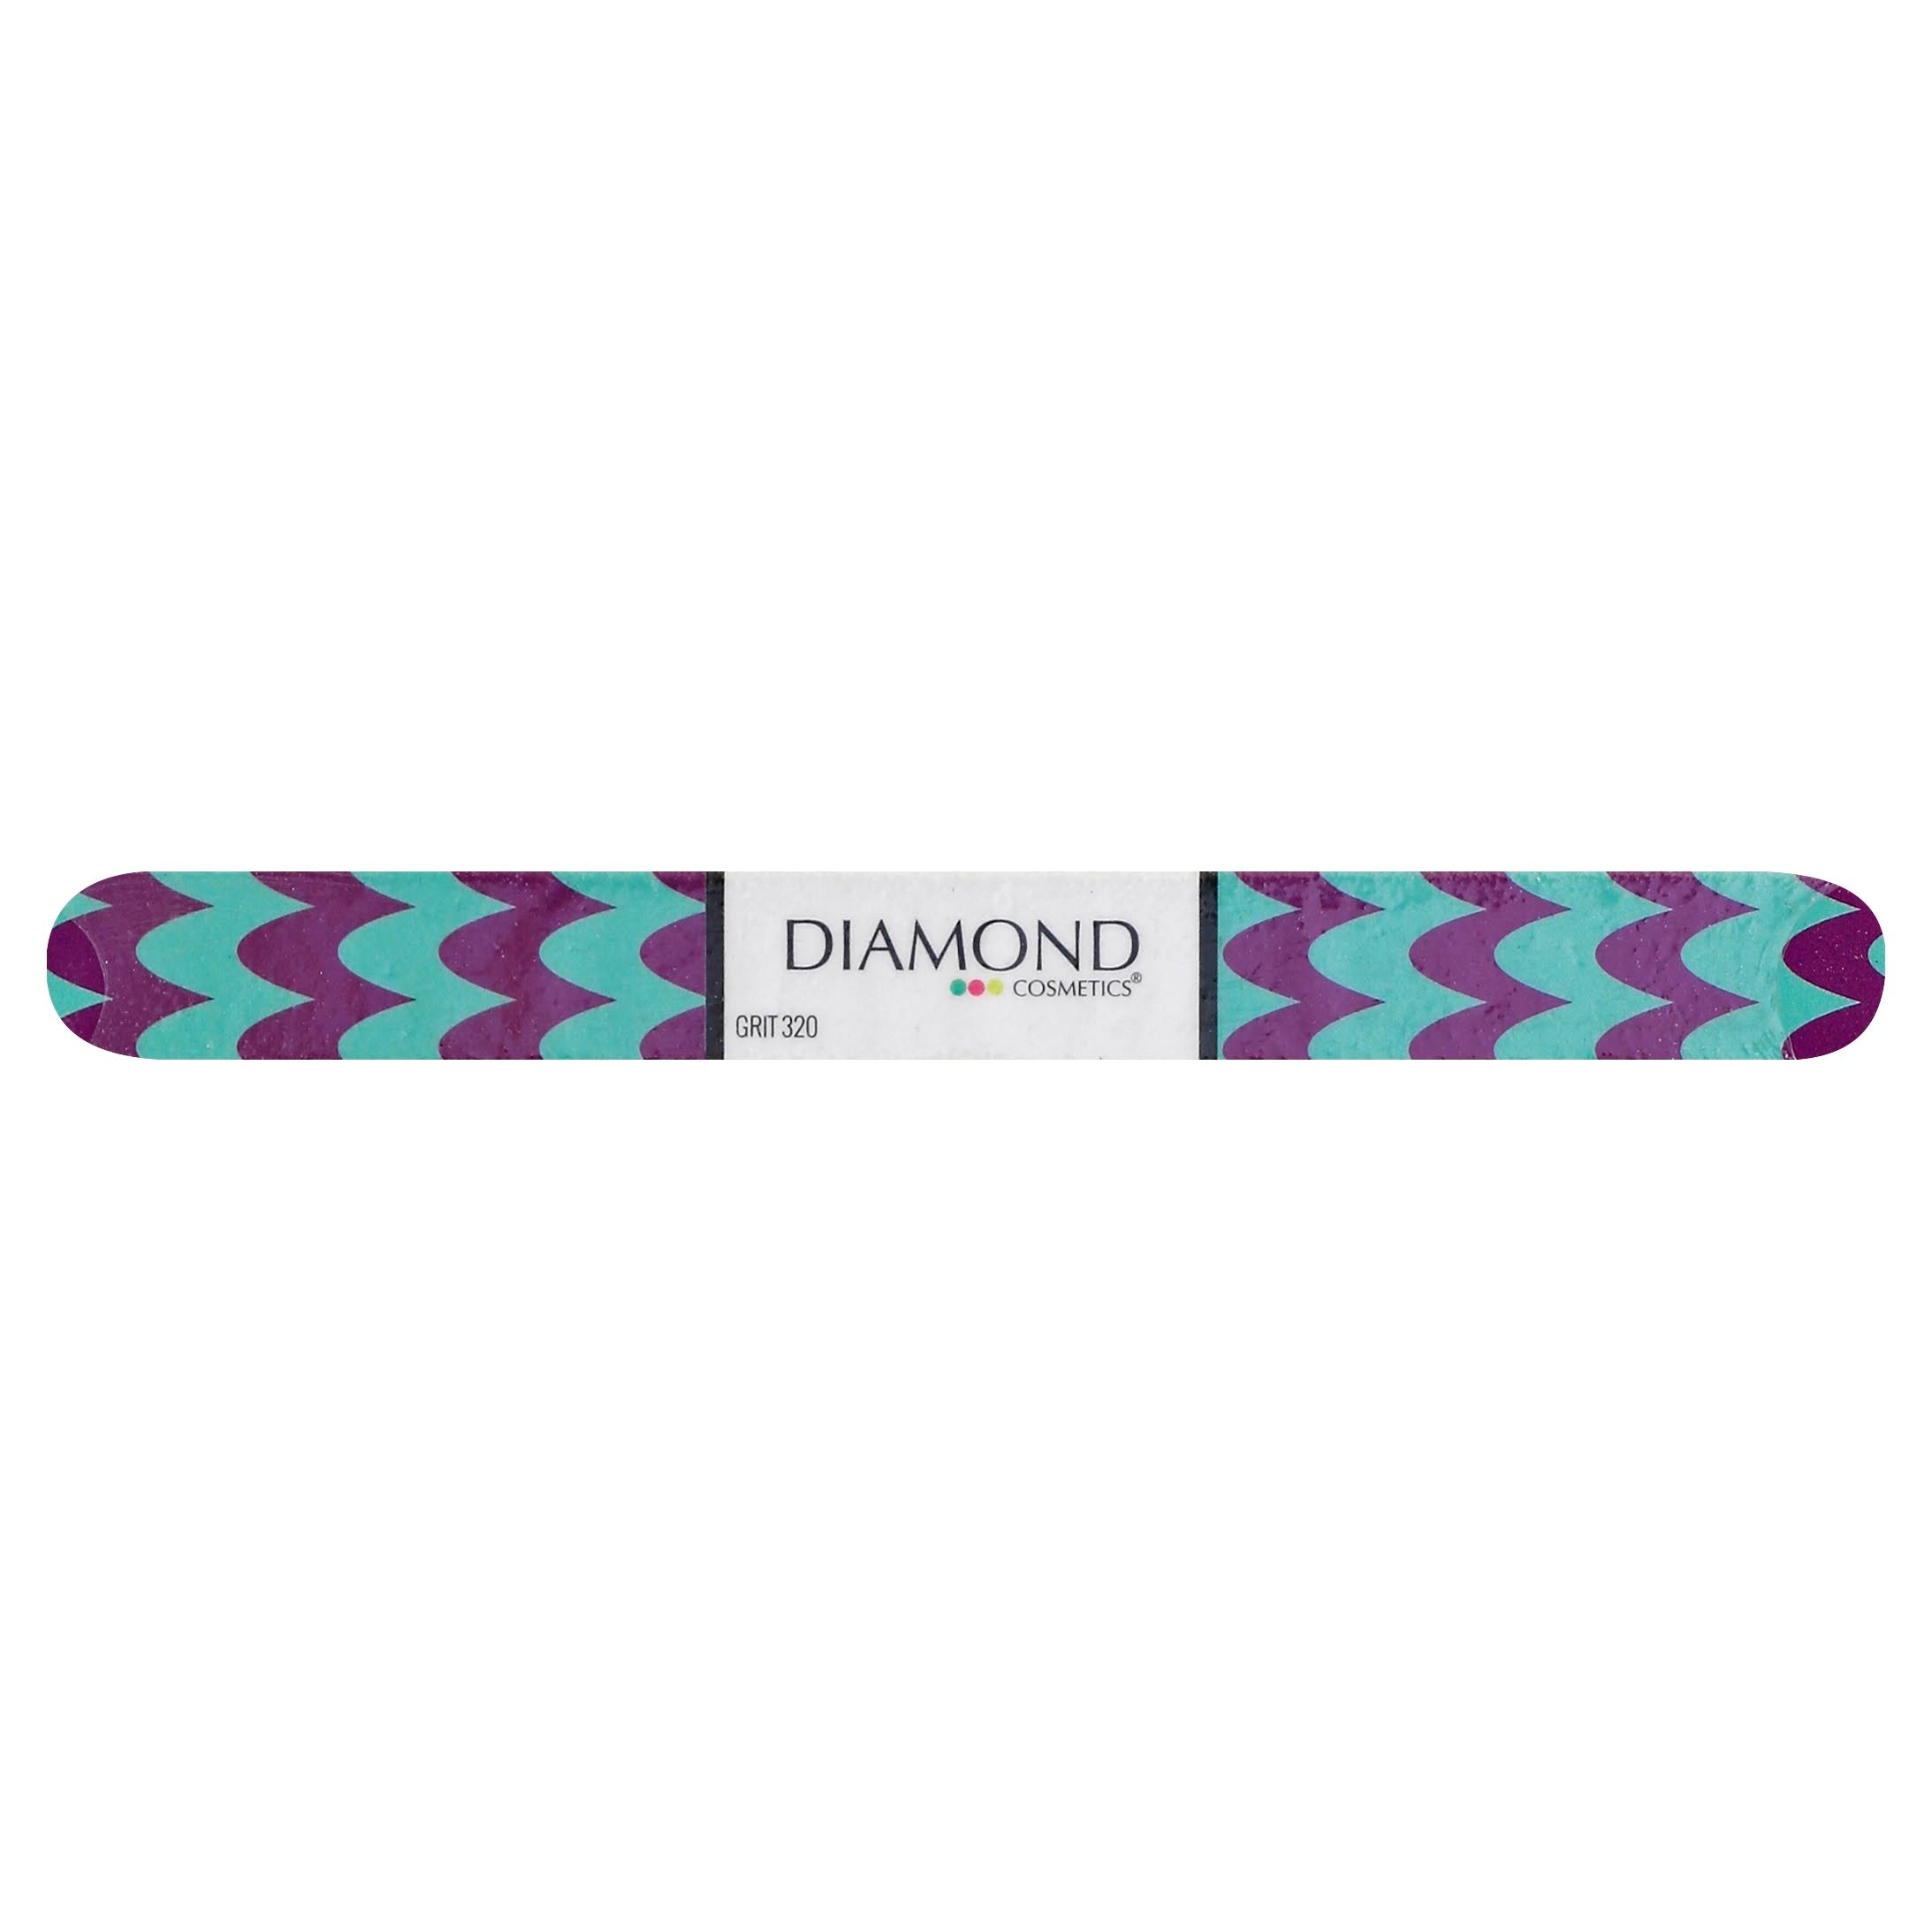 Diamond Cosmetics Fun Nail File